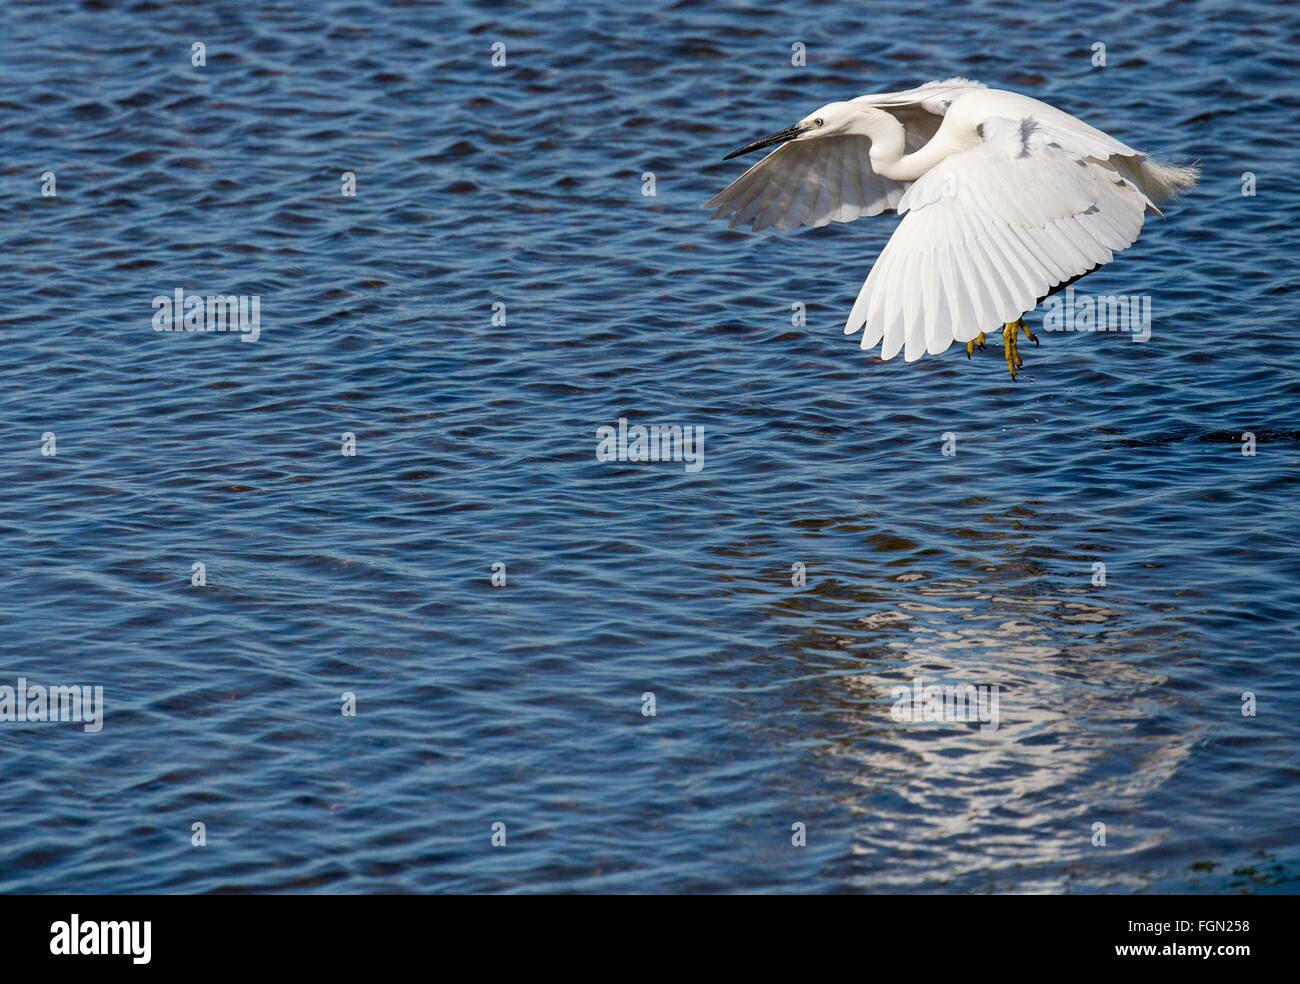 Little egret, Egretta garzetta, in flight over lagoon, Quinta de Marim, Natural Park Ria Formosa, Algarve, Portugal Stock Photo